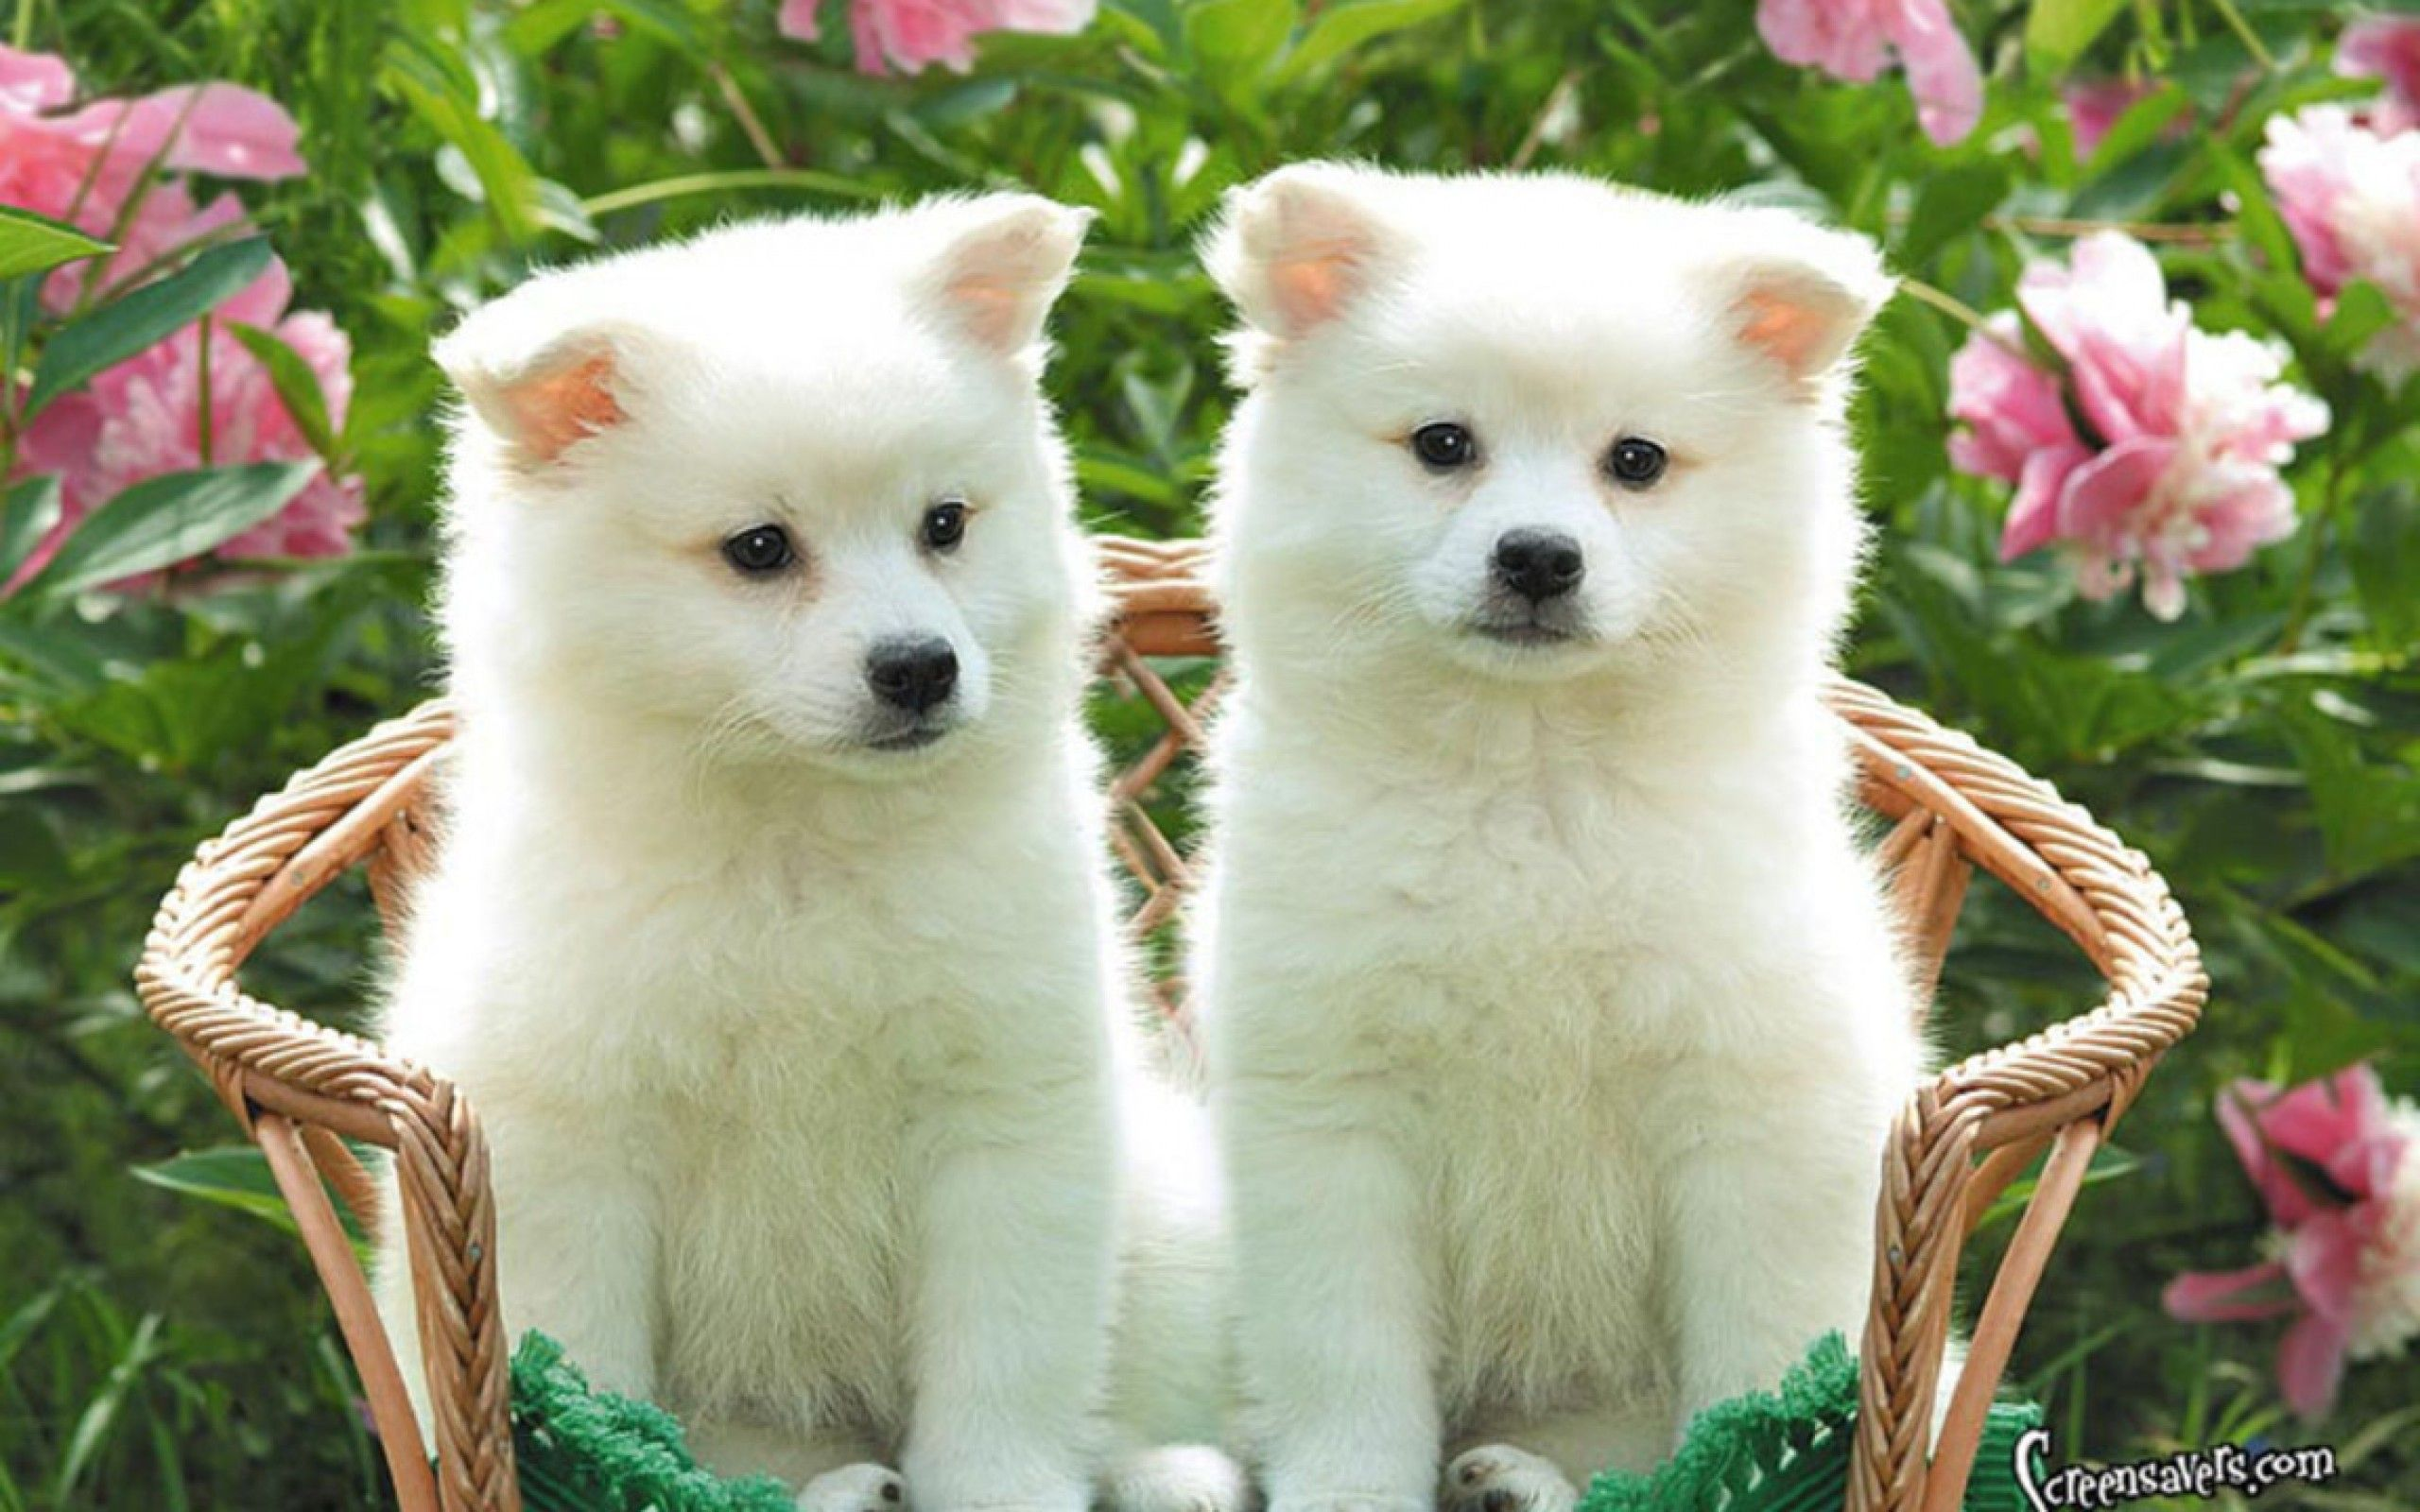 cute baby puppies | aww | pinterest | baby puppies, dog wallpaper